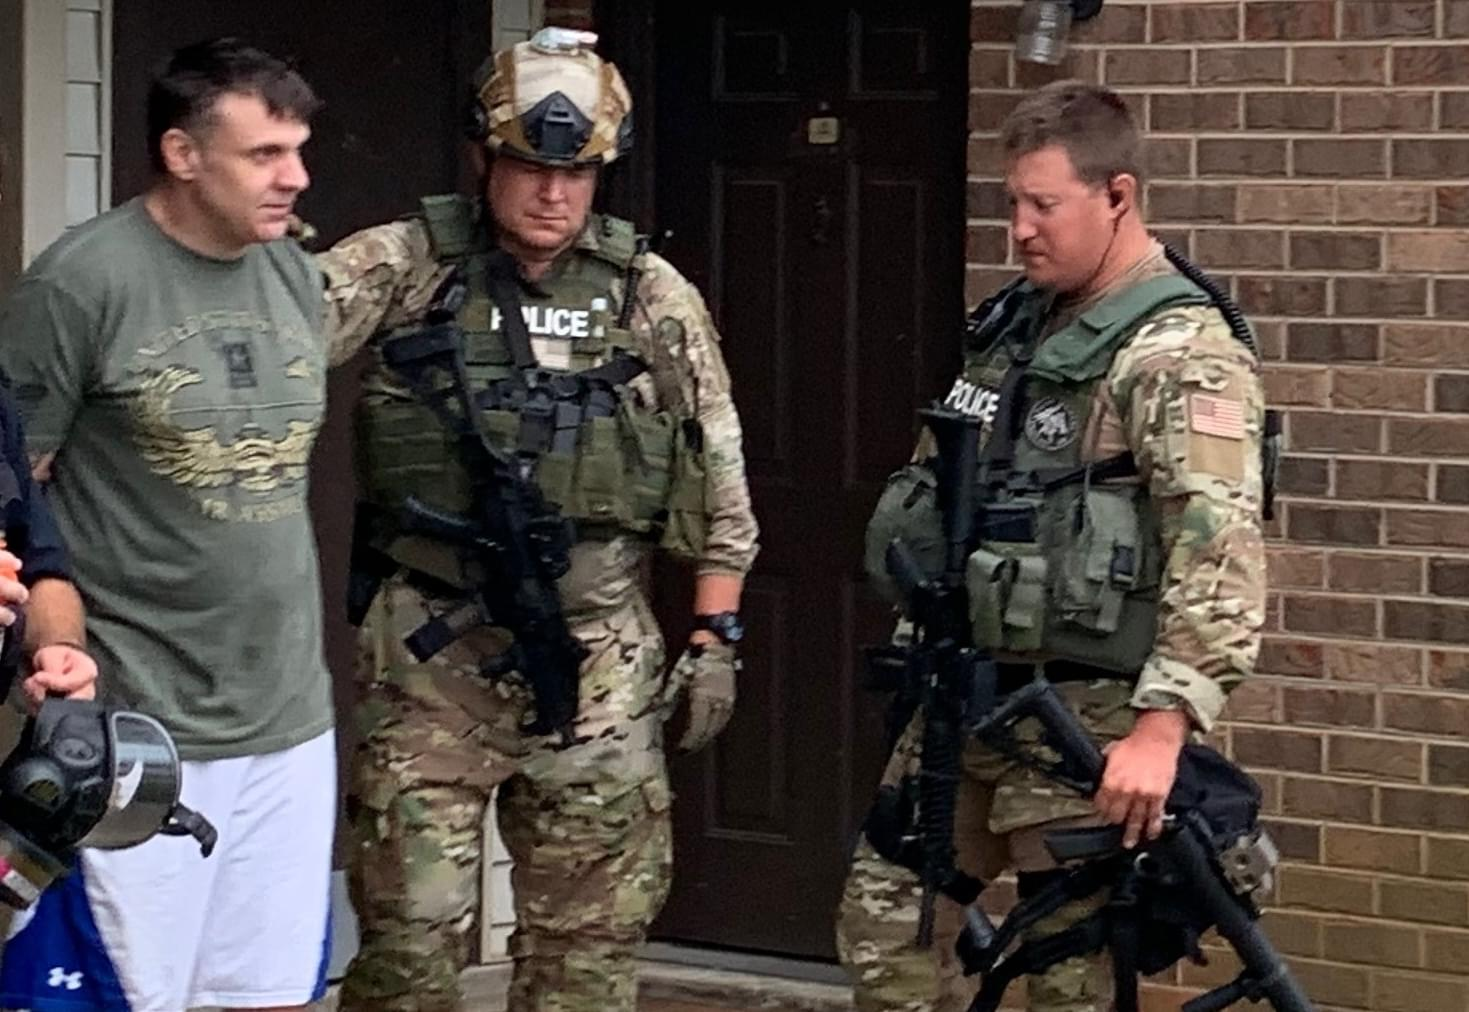 Barricaded Suspect Arrested in Morristown